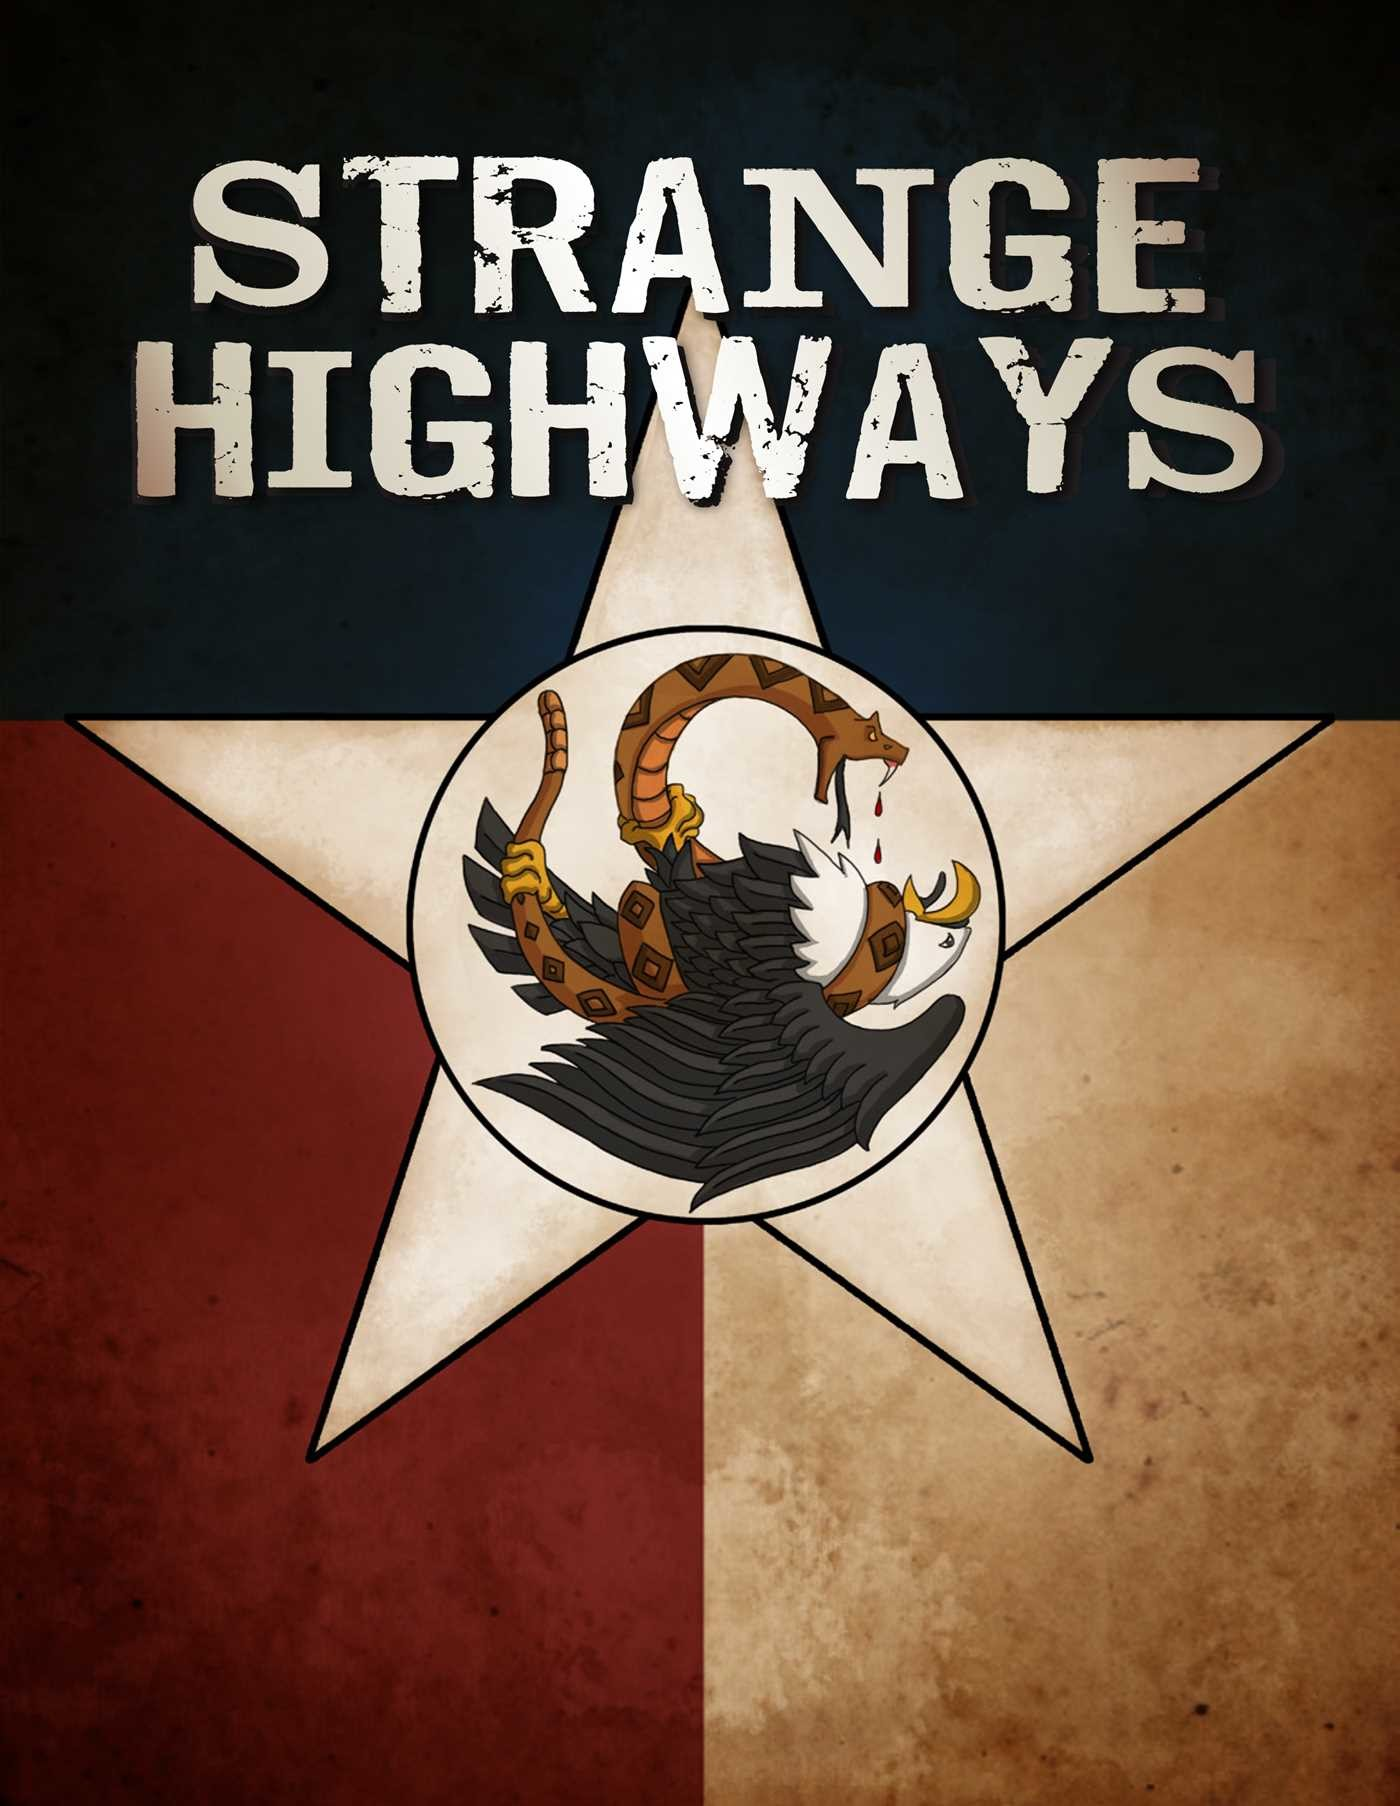 Strange highways 9781683831259.in01